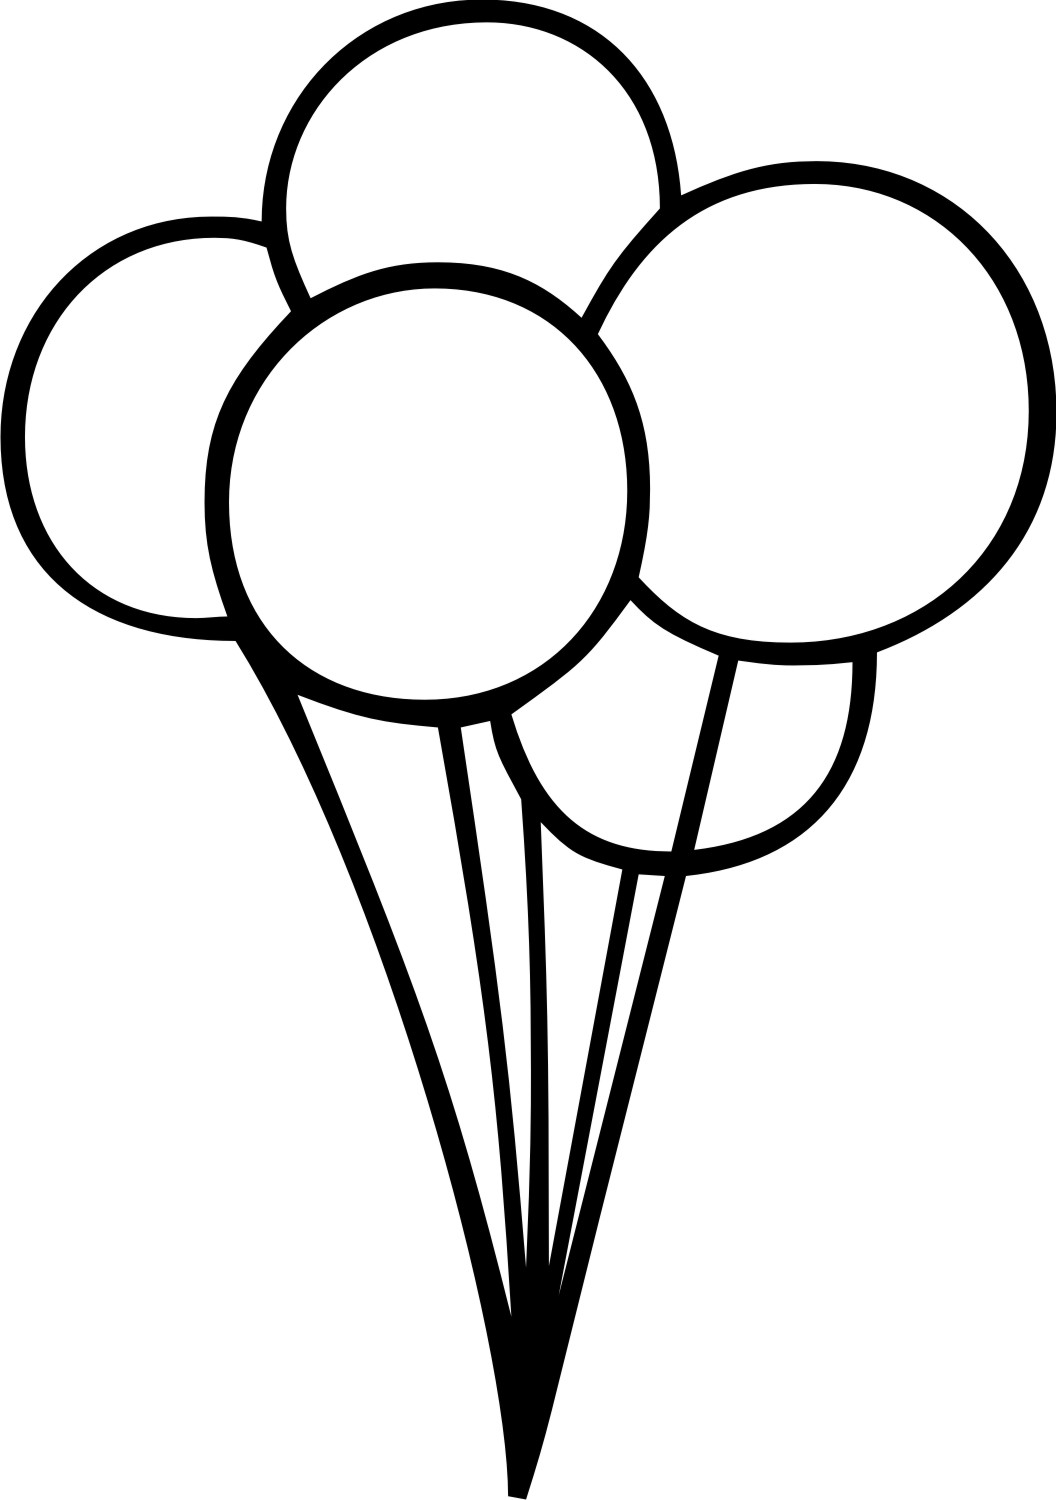 1056x1500 Black And White Balloon Clip Art